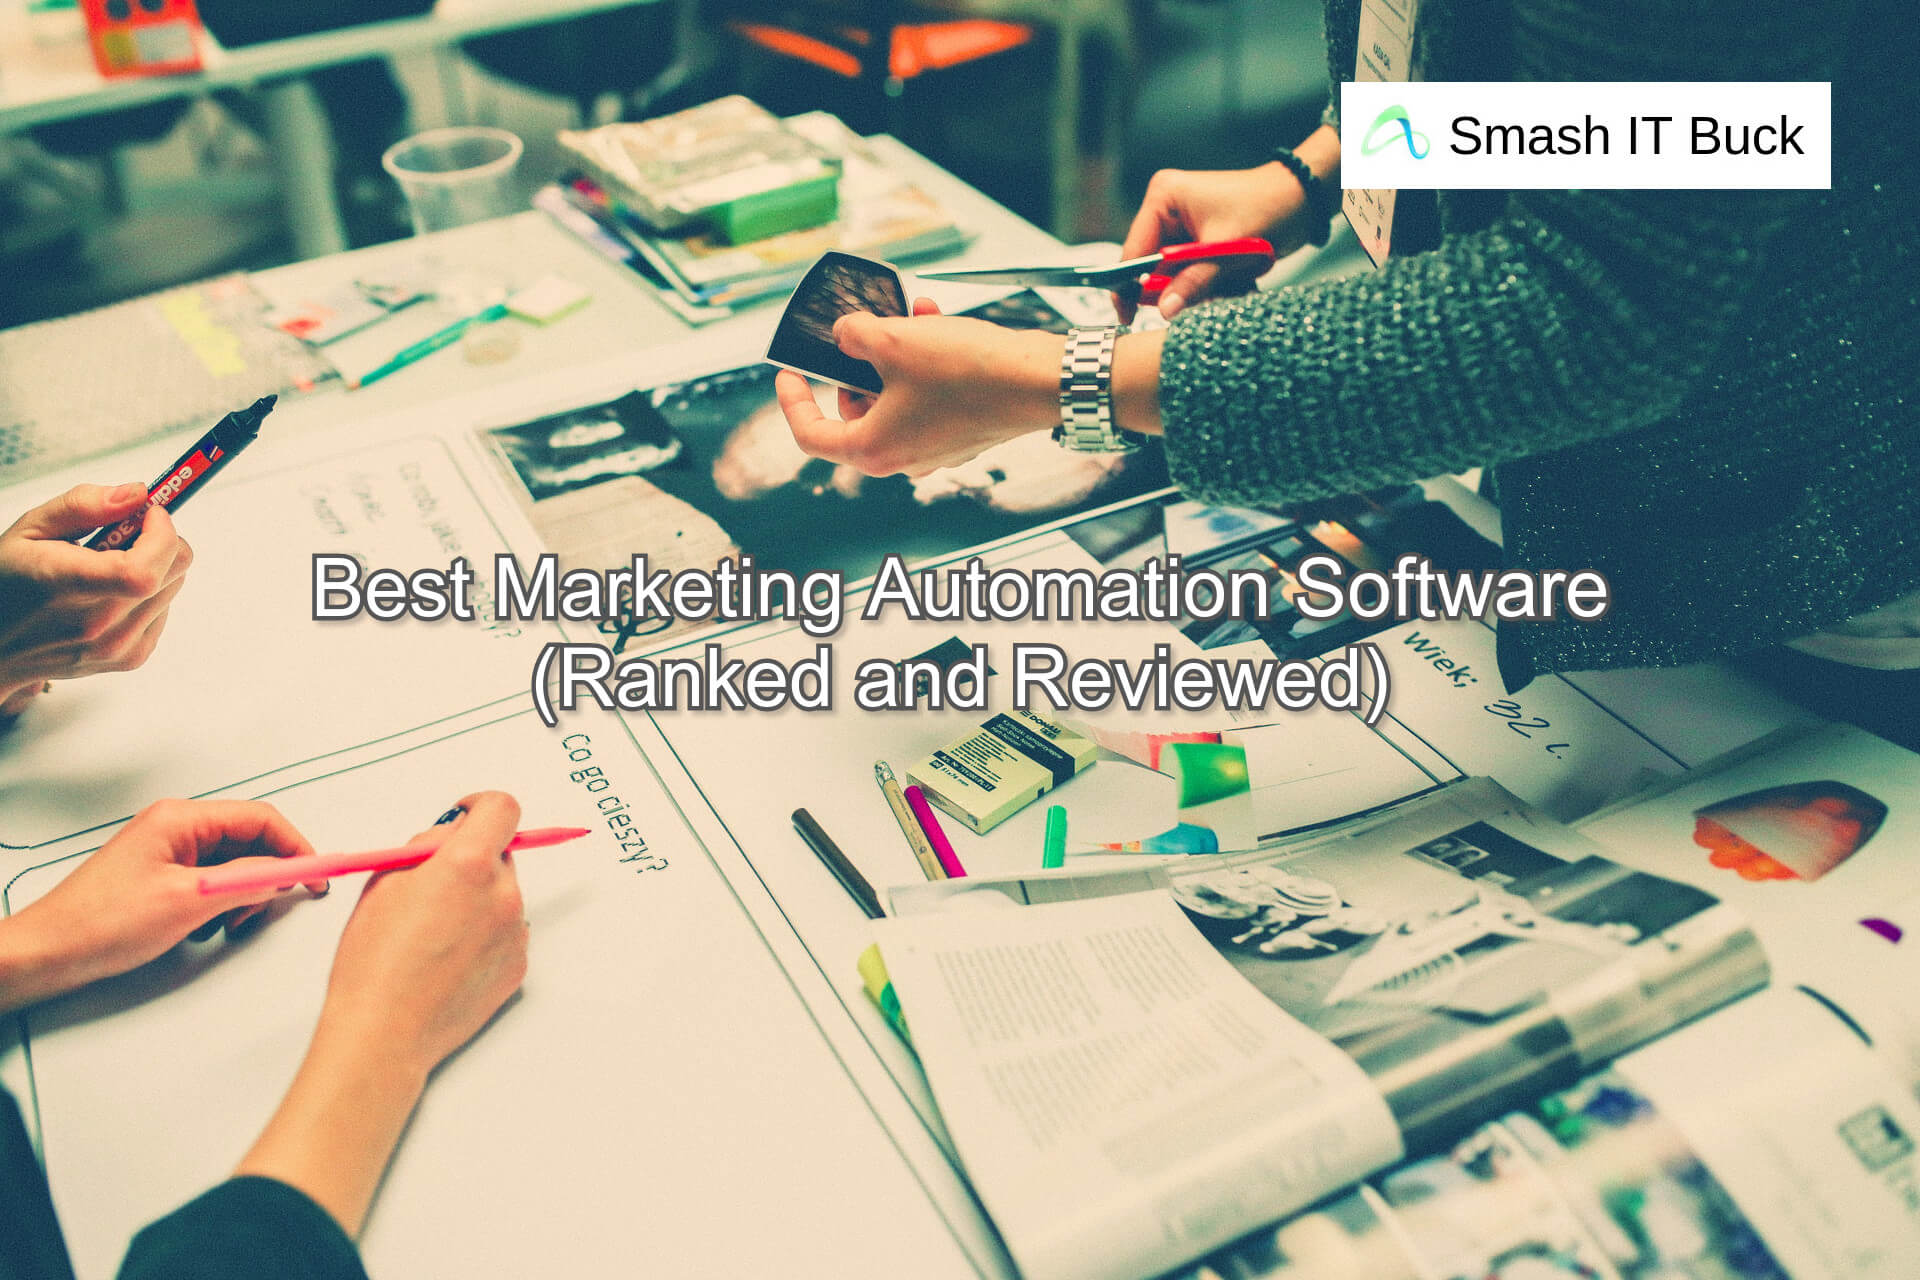 Best Marketing Automation Software Tools (2021)